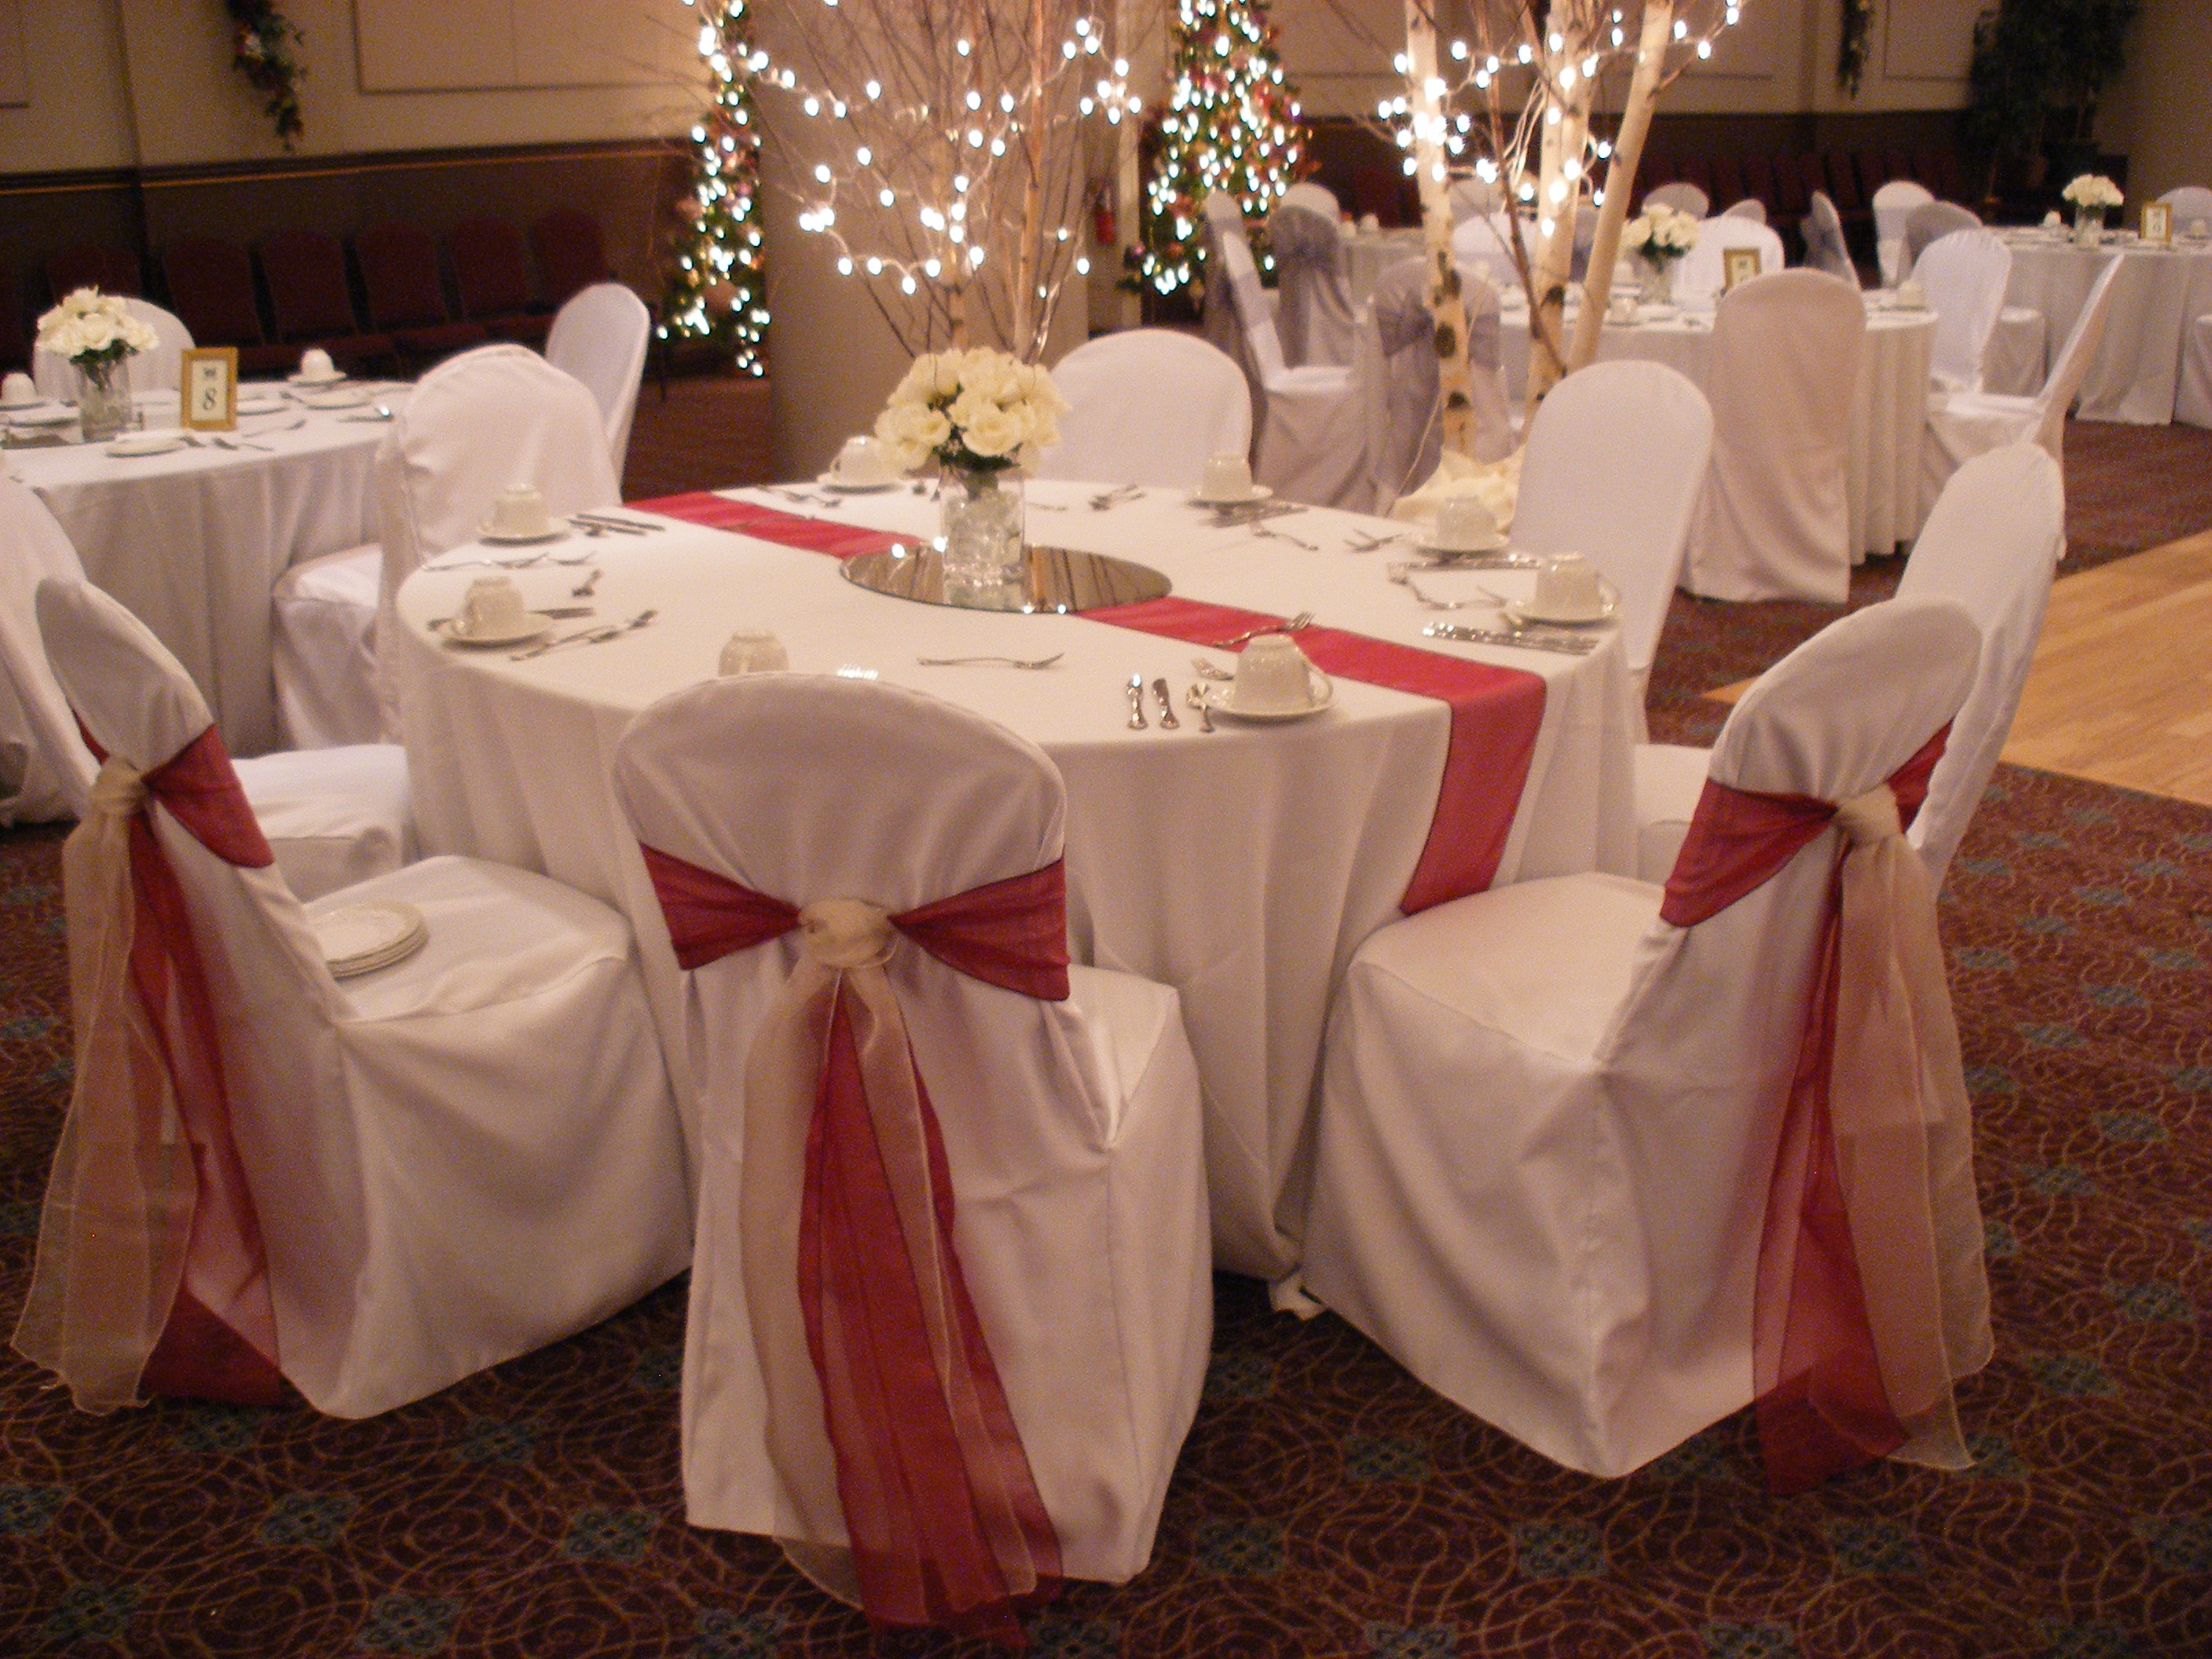 Cranberry champagne wedding - Cranberry And Champagne Sashes